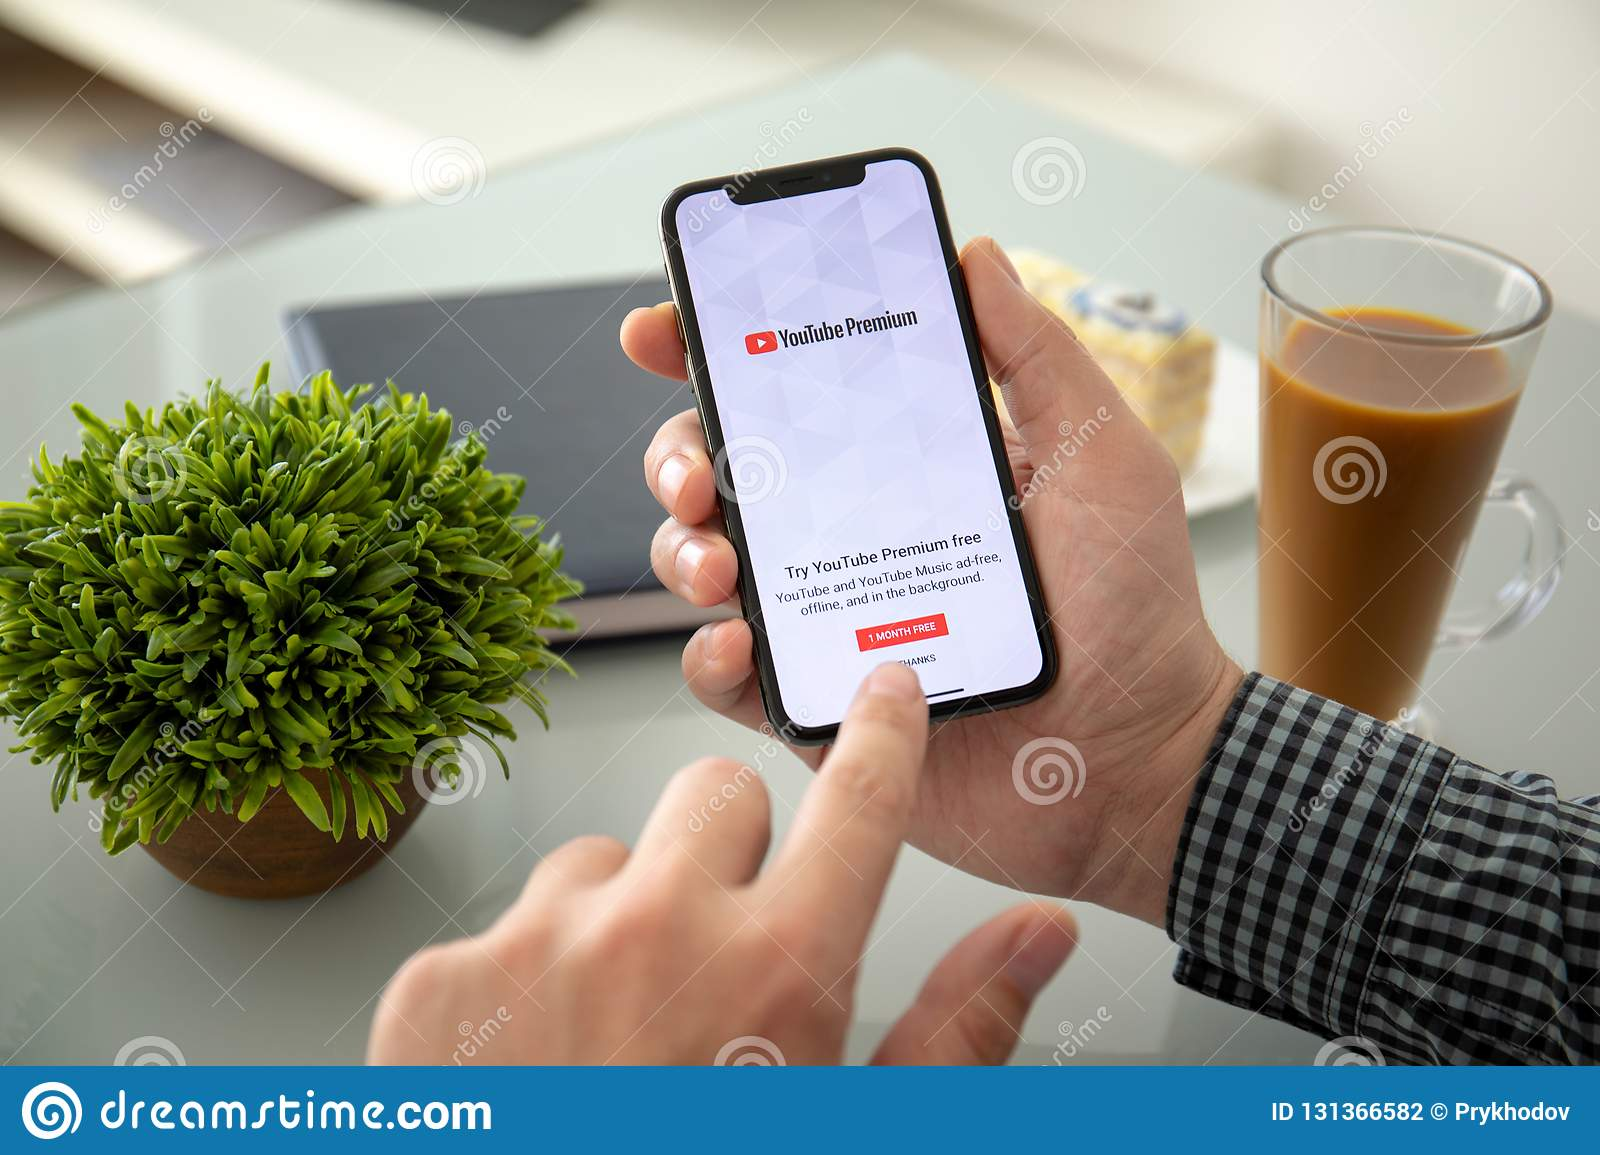 Man holding iPhone X with app YouTube Premium on screen